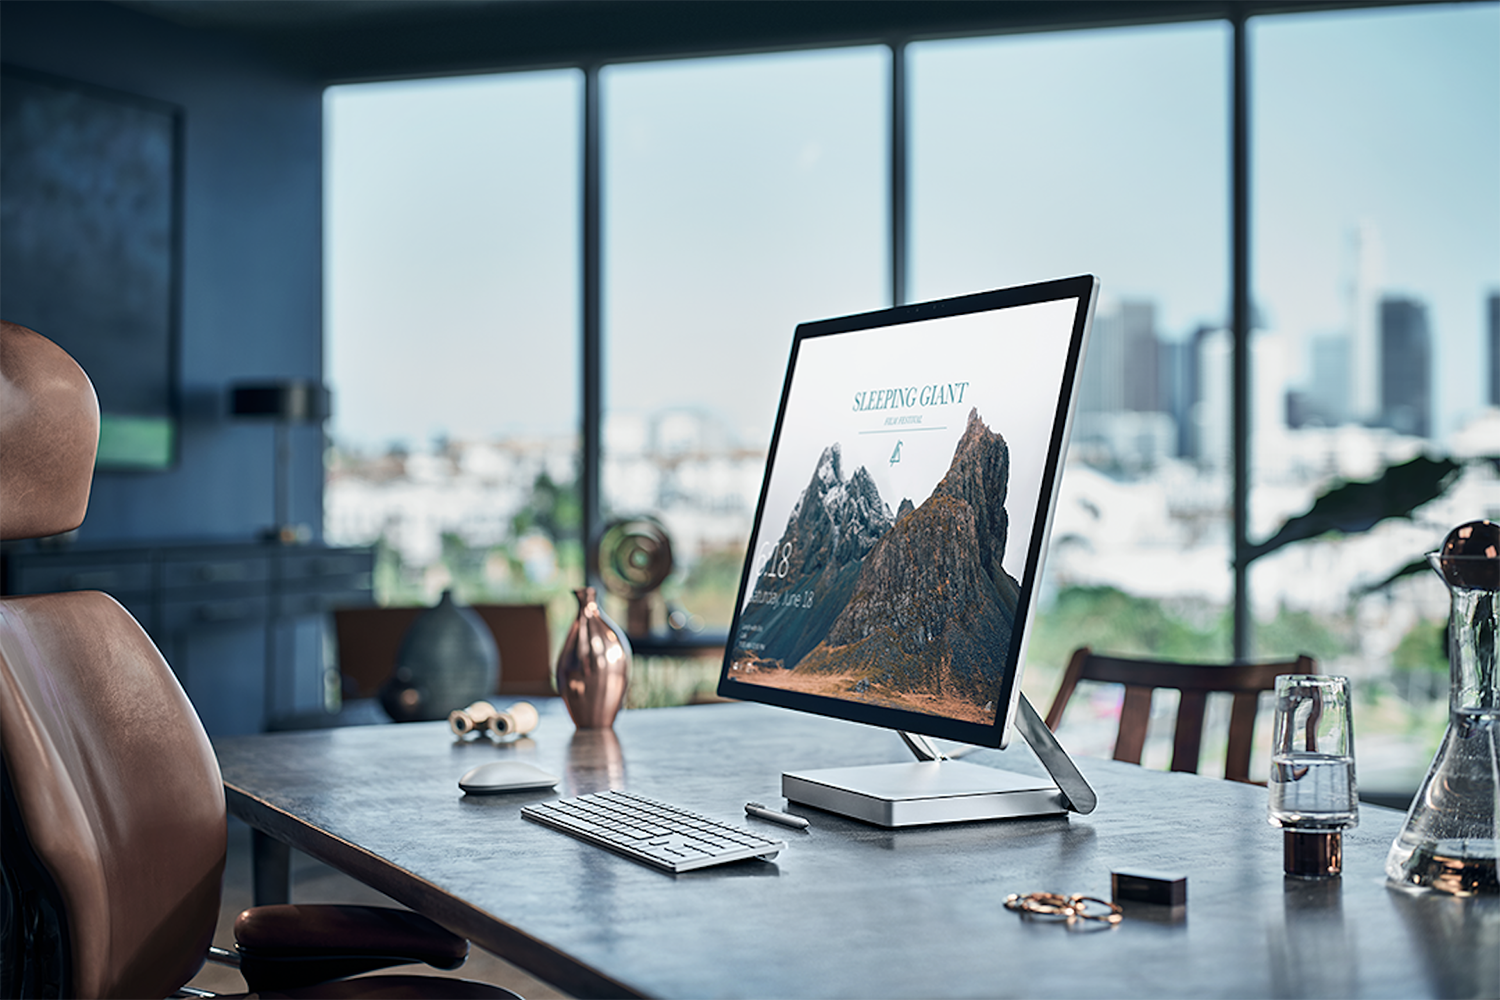 *Type Cover, Surface Dial, Surface Pen, Microsoft Office and some software sold separately. 1 Up to hours of video playback. Testing conducted by Microsoft in April using preproduction Intel Core i5, GB, 8 GB RAM device.